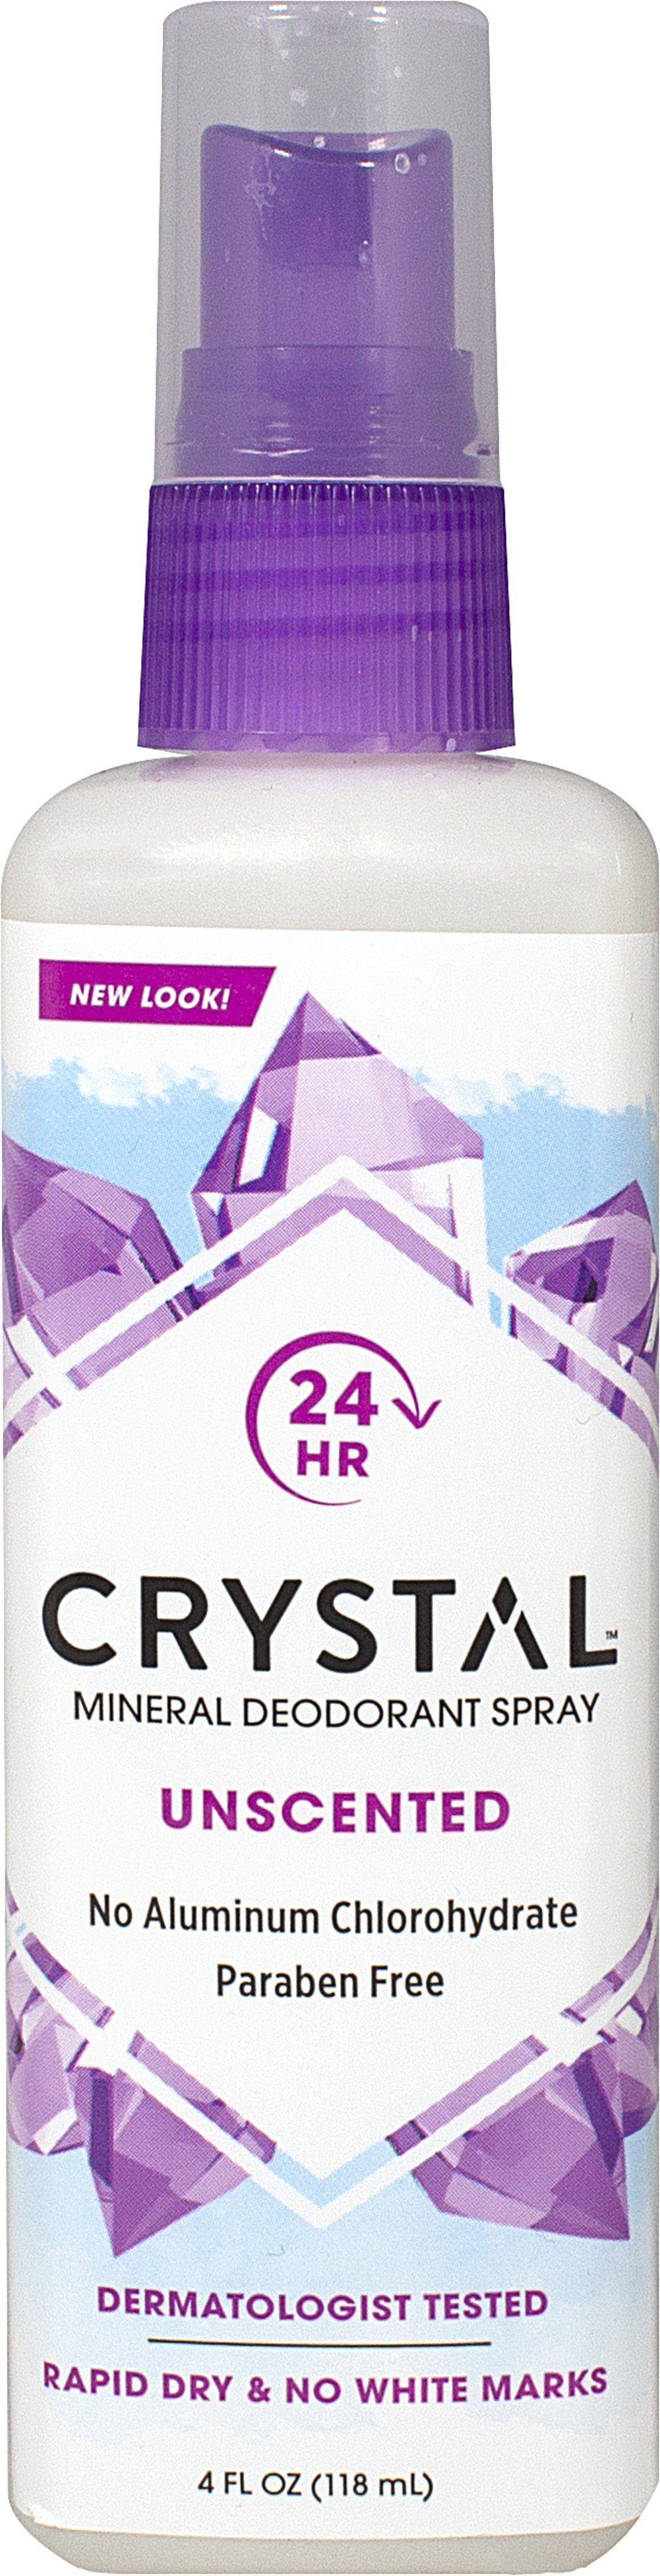 Crystal® Body Deodorant Spray Thumbnail Alternate Bottle View